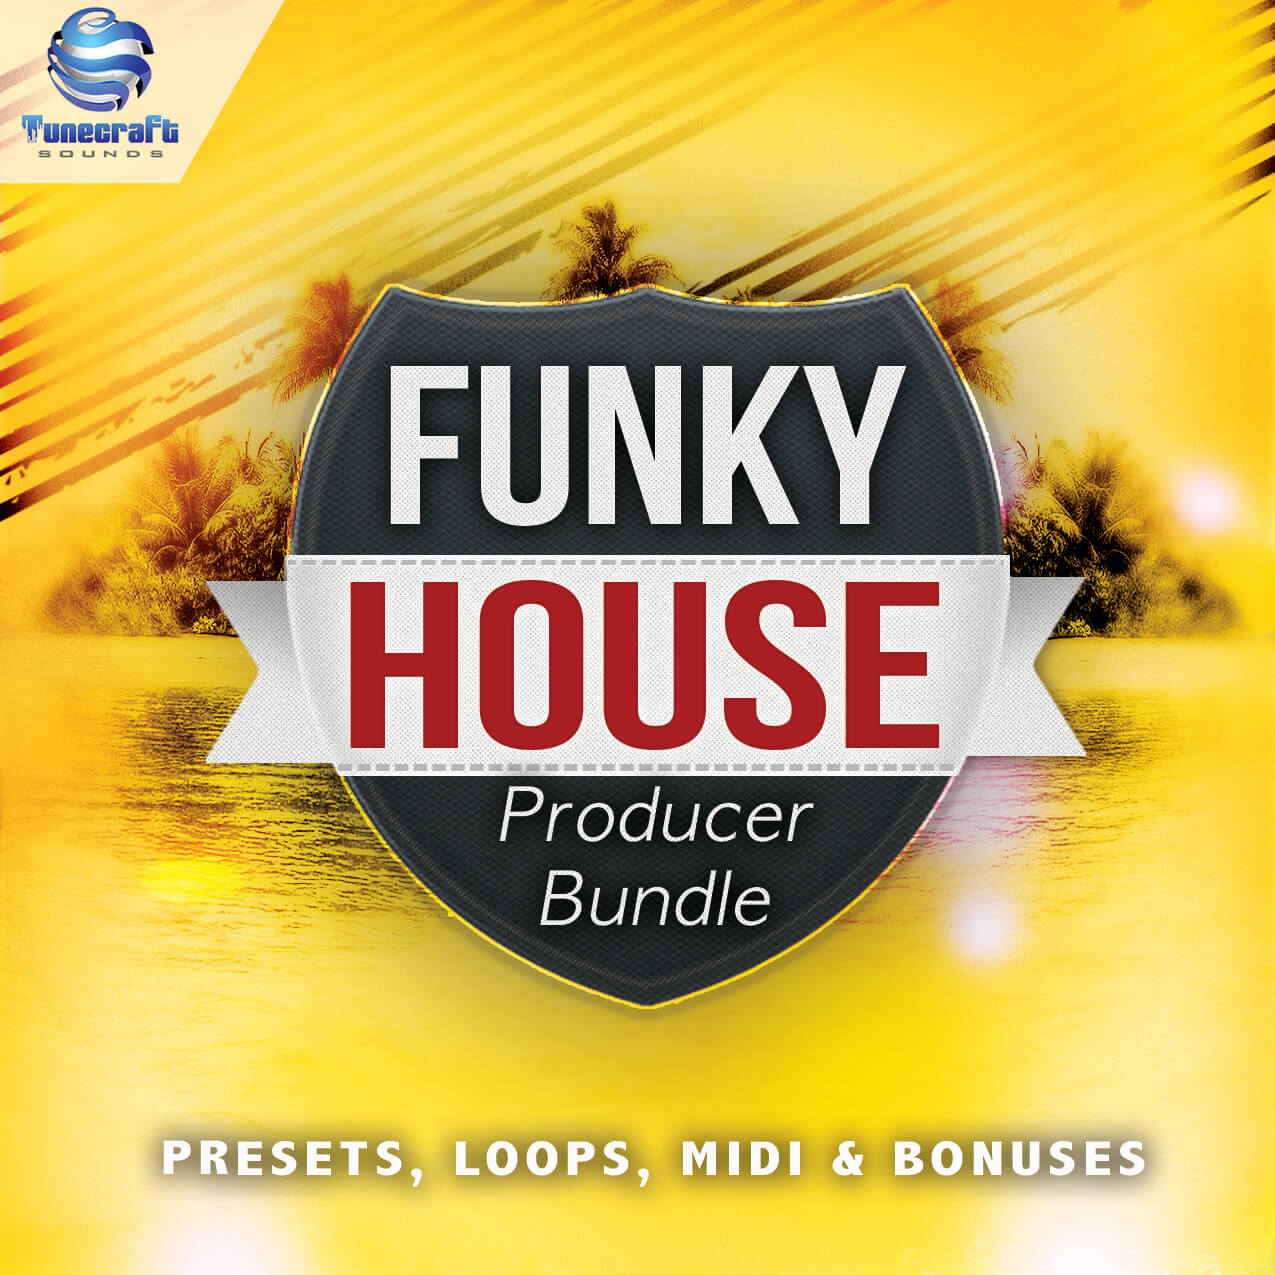 Tunecraft Funky House Producer Bundle